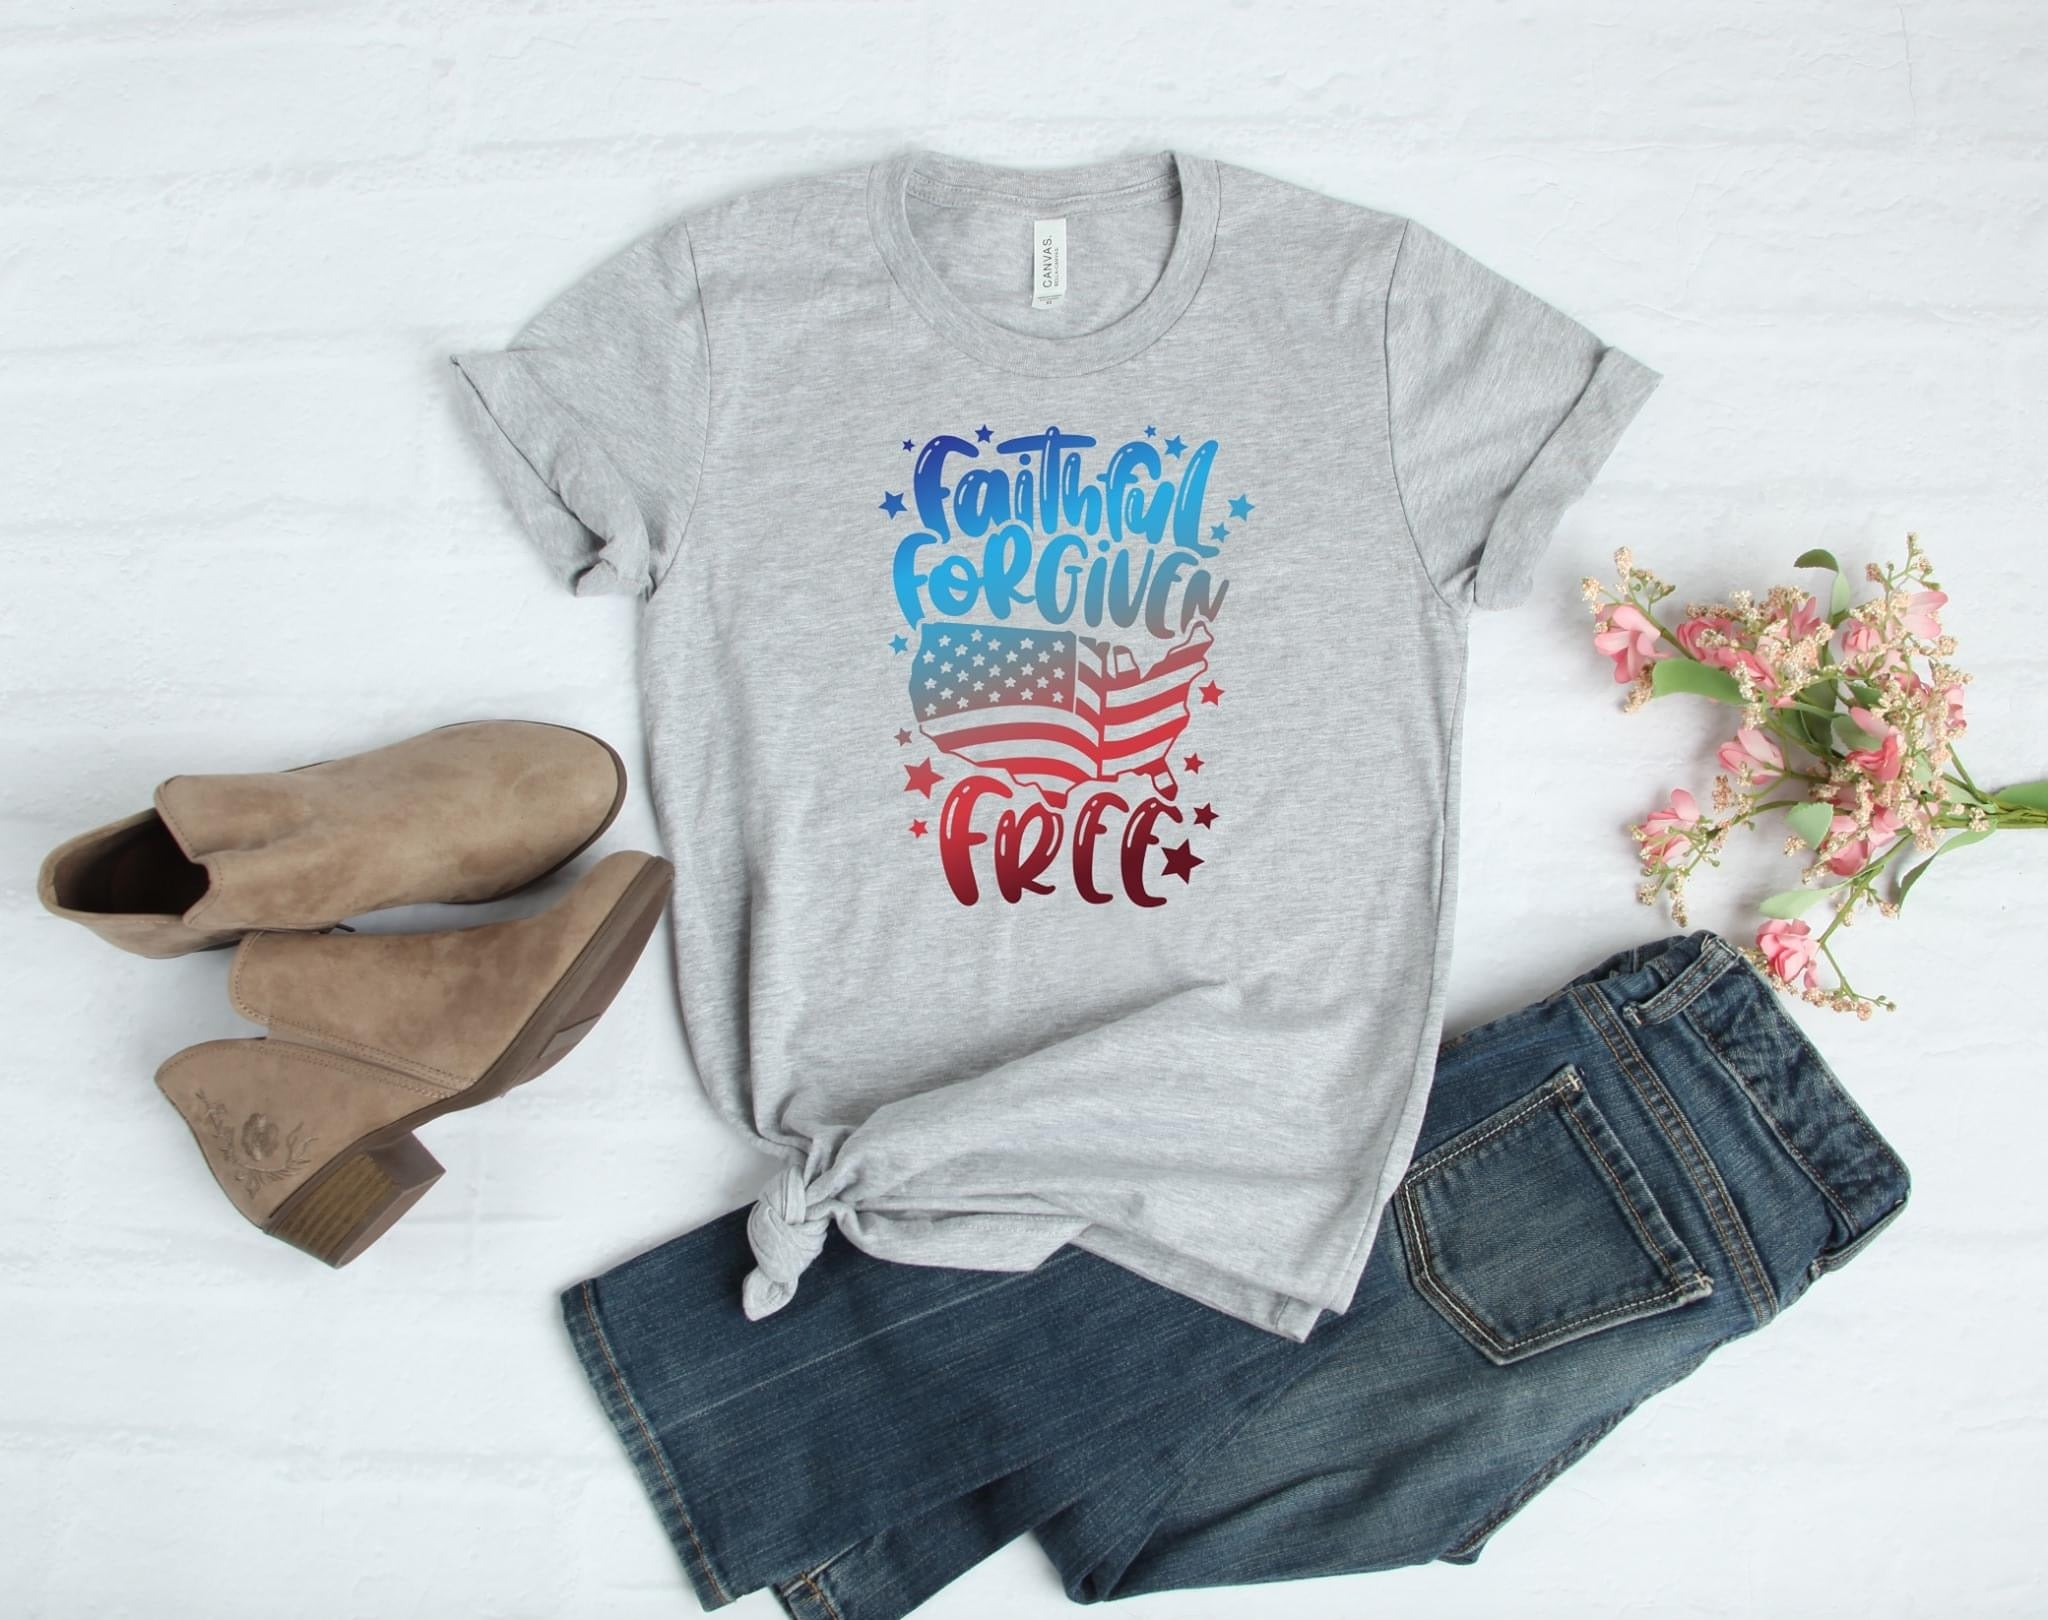 Faithful Forgiven Free Gray Tee